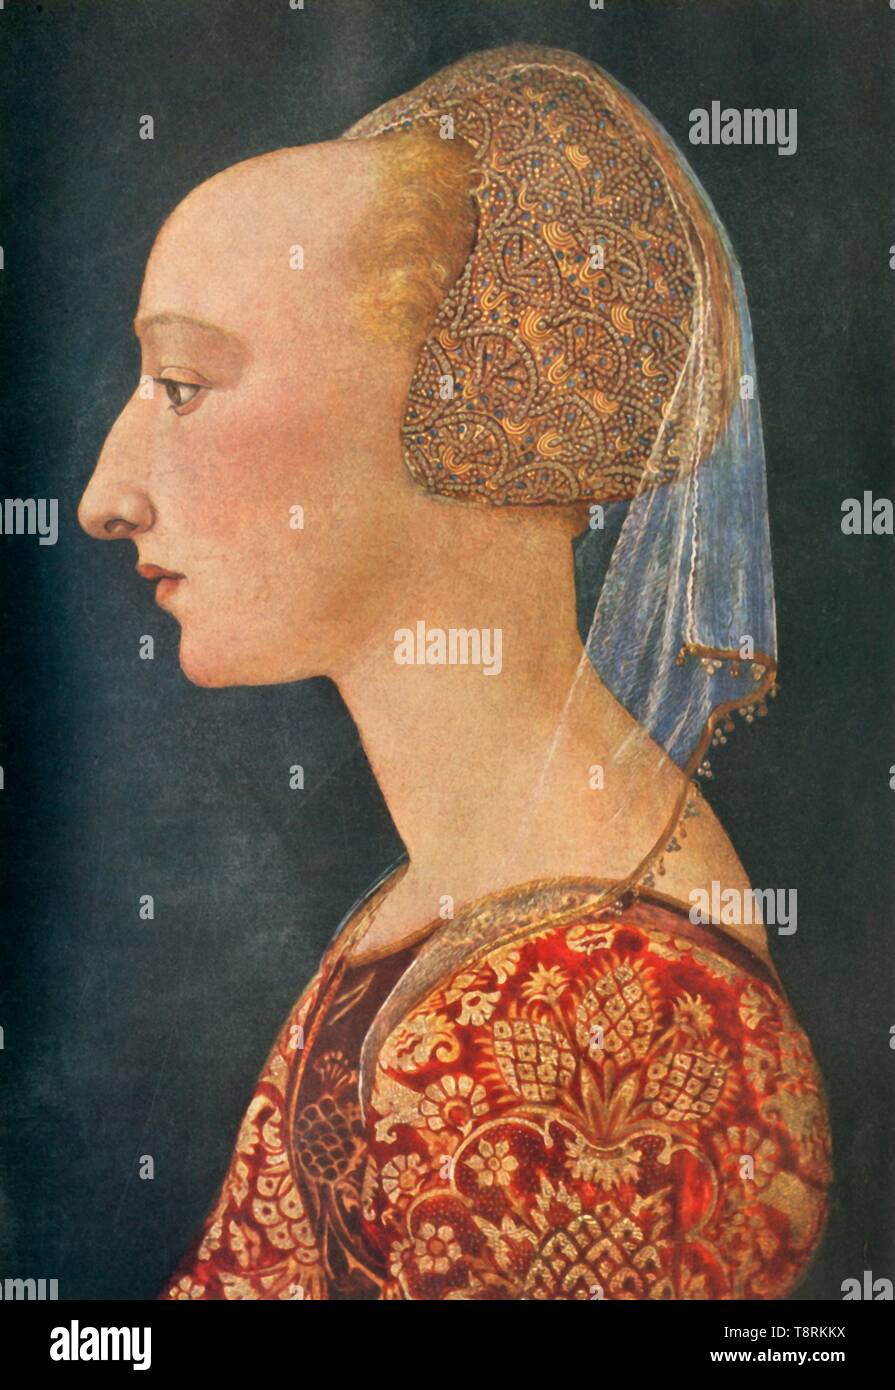 """'Portrait of a Lady in Red', 1460-1470, (1934). Portrait of an unknown woman in an embroidered cap decorated with pearls. Her high forehead, achieved by shaving or plucking, is emphasised by the prophile view. Painting originally acquired as a portrait of Isotta da Rimini by Piero della Francesca but probably by a Florentine artist, in the National Gallery in London. From """"The Connoisseur"""", Vol 93, No 389, January 1934. [The Connoisseur Ltd., London, 1934] - Stock Image"""